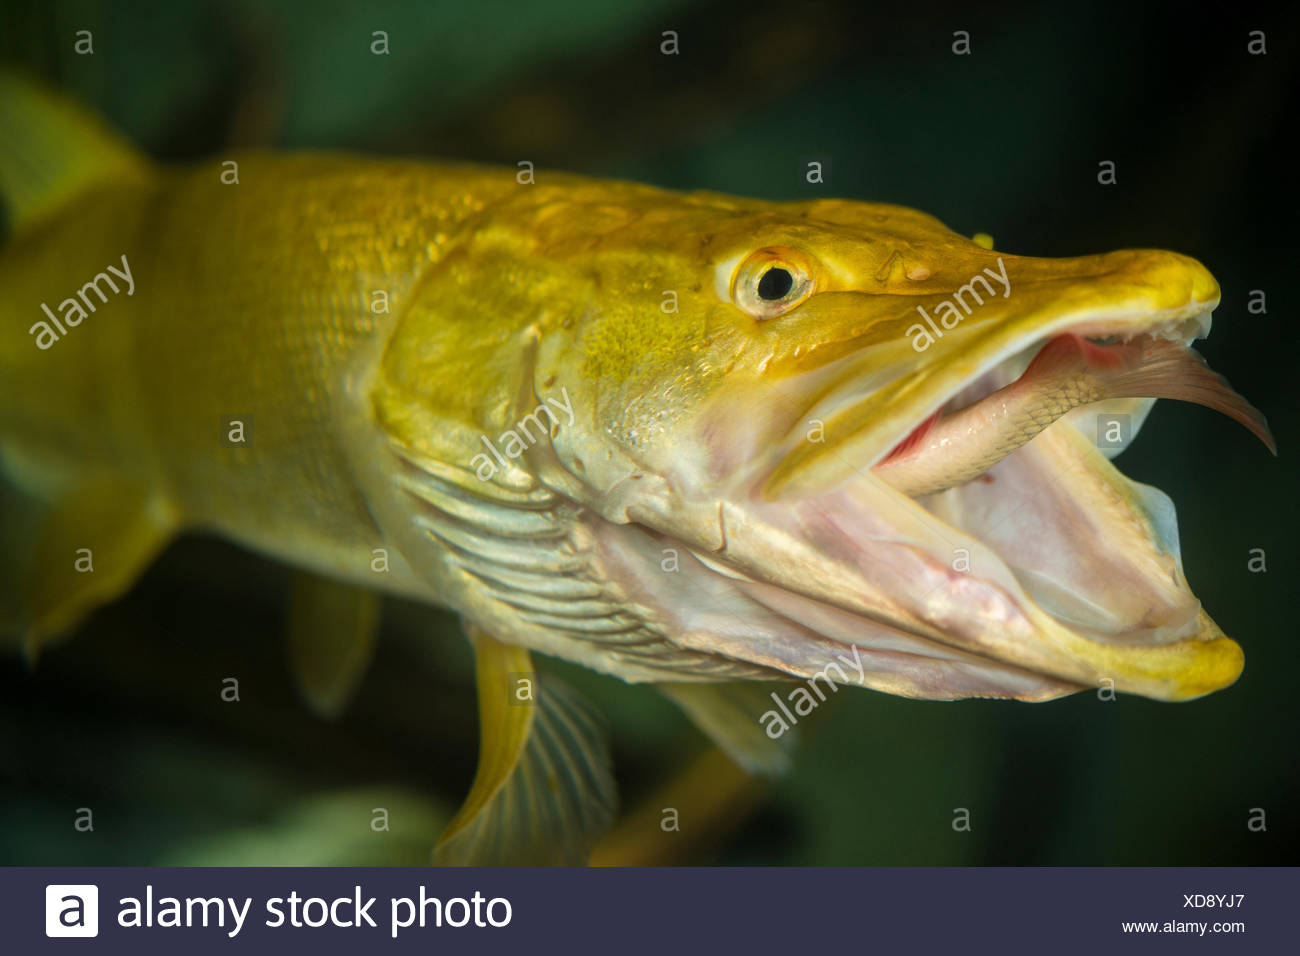 Frehswater Stock Photos & Frehswater Stock Images - Alamy